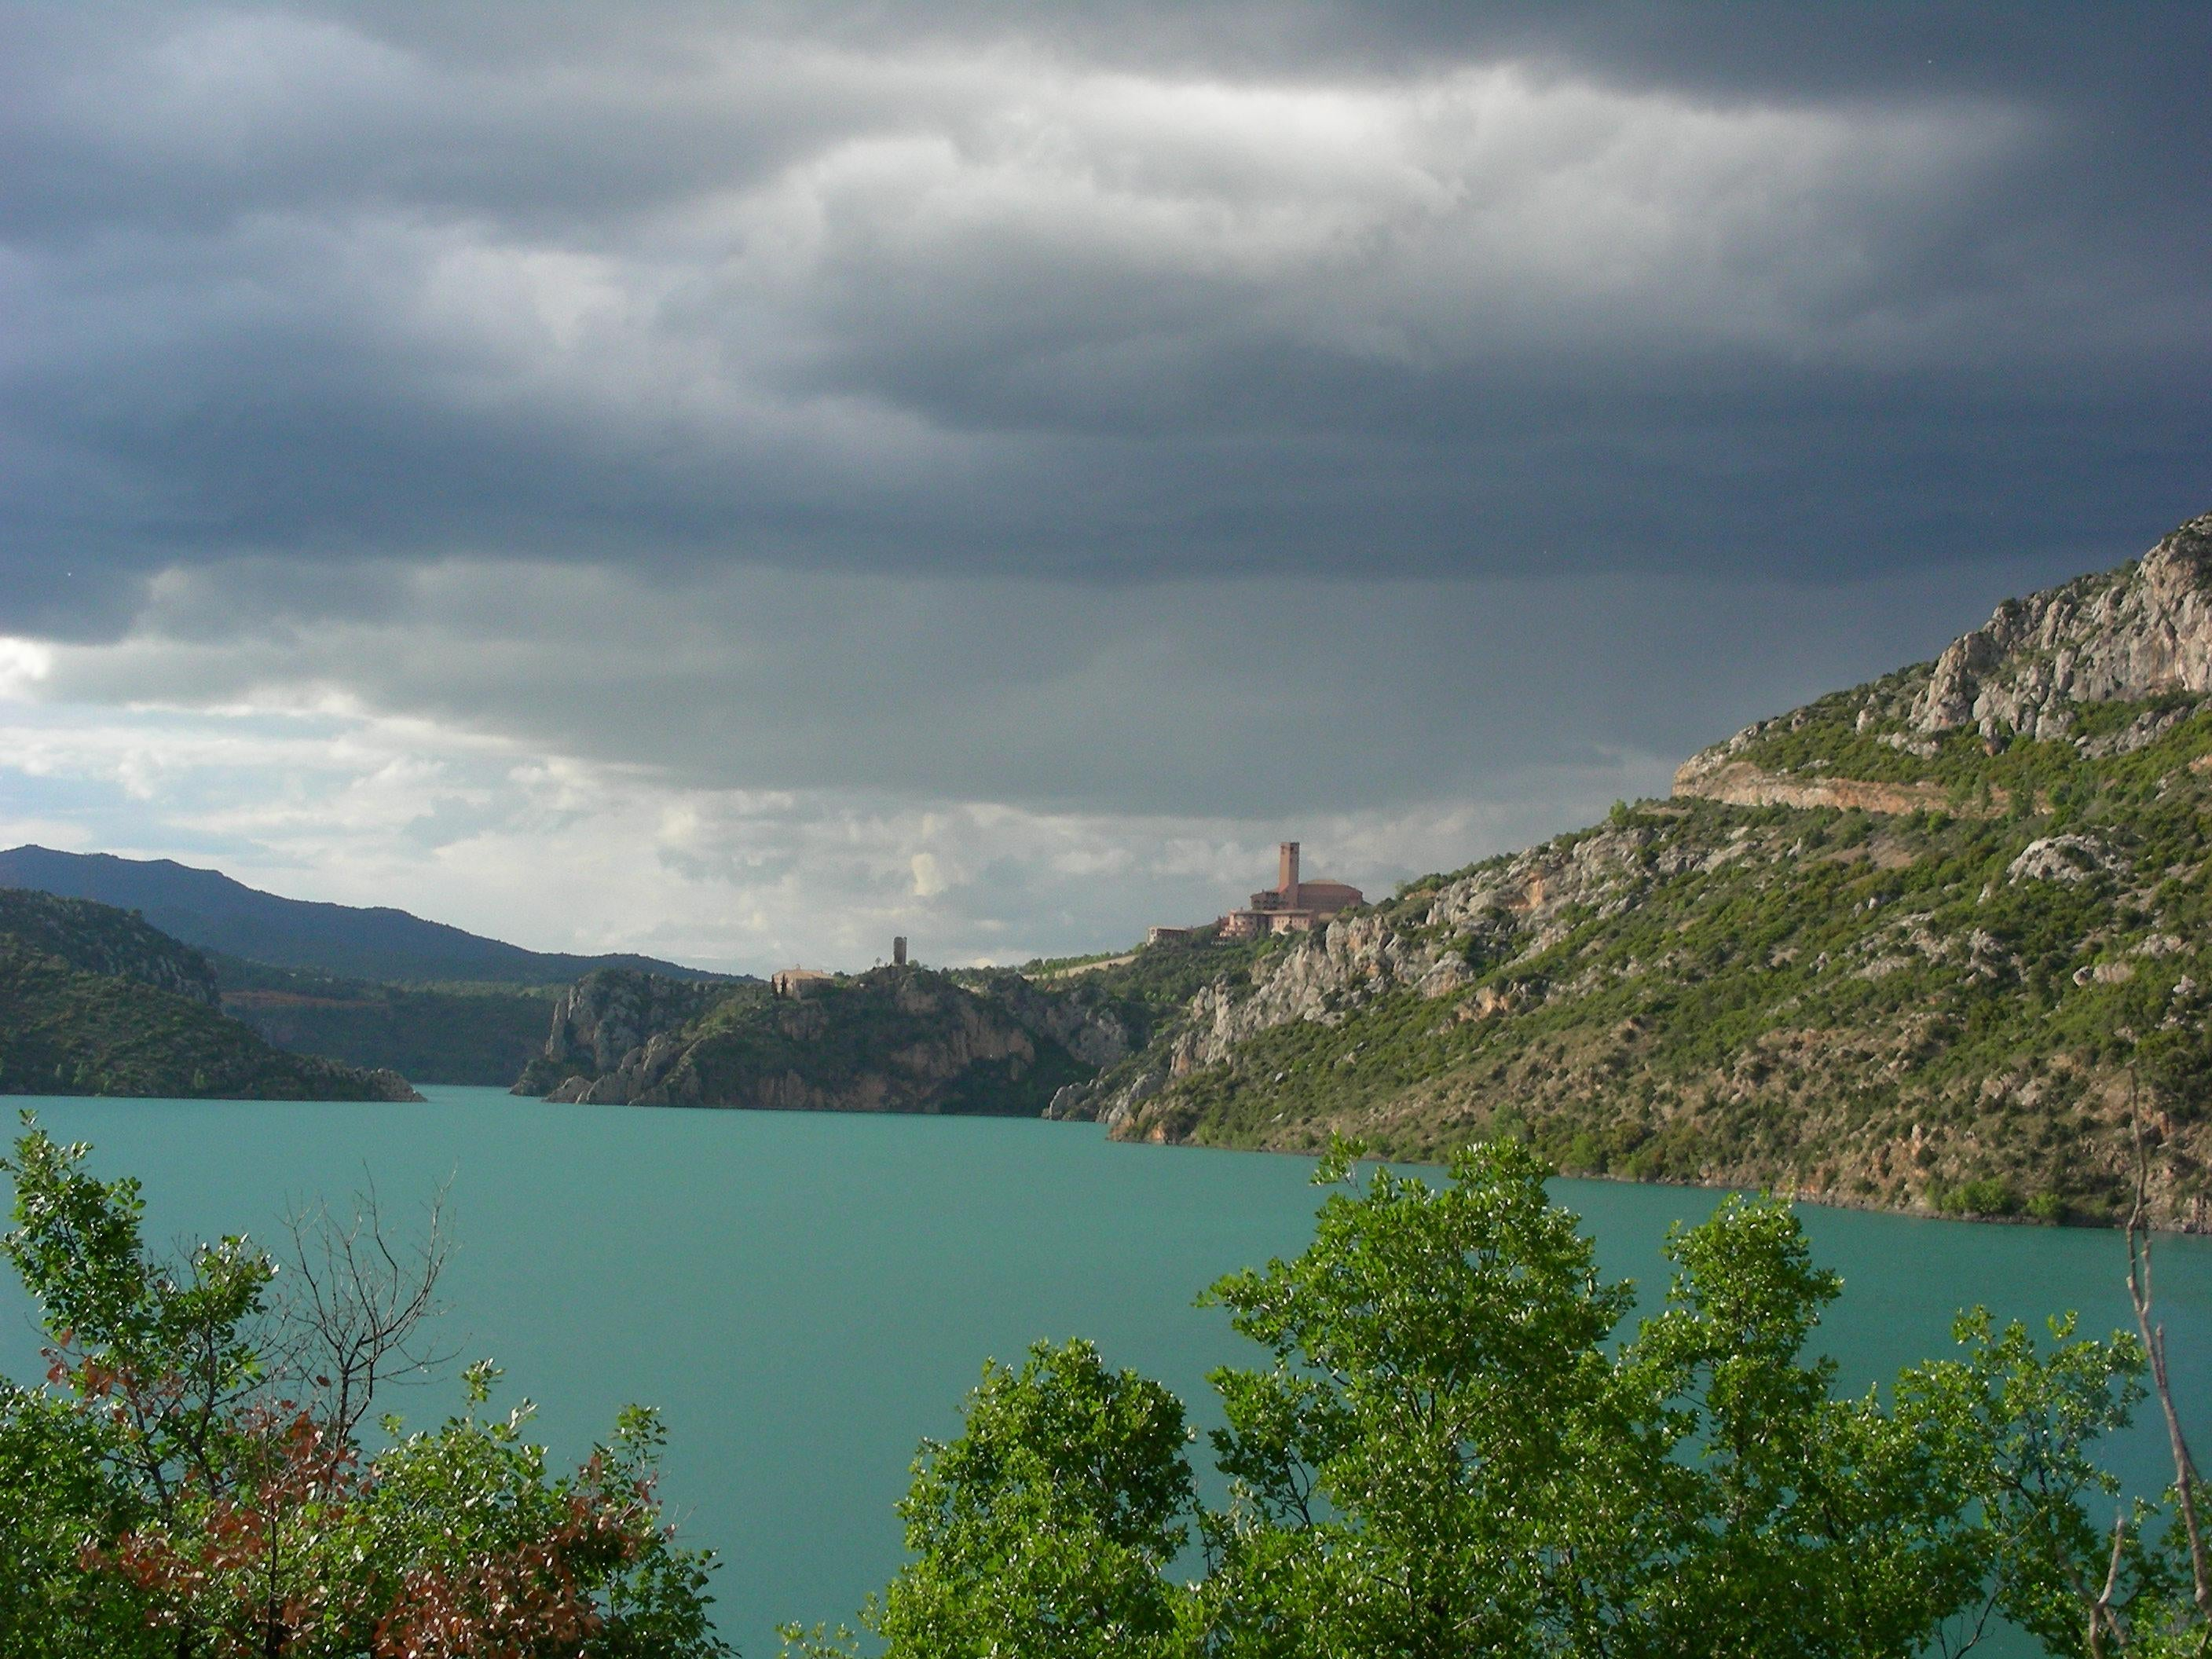 Reservoir of Torreciudad